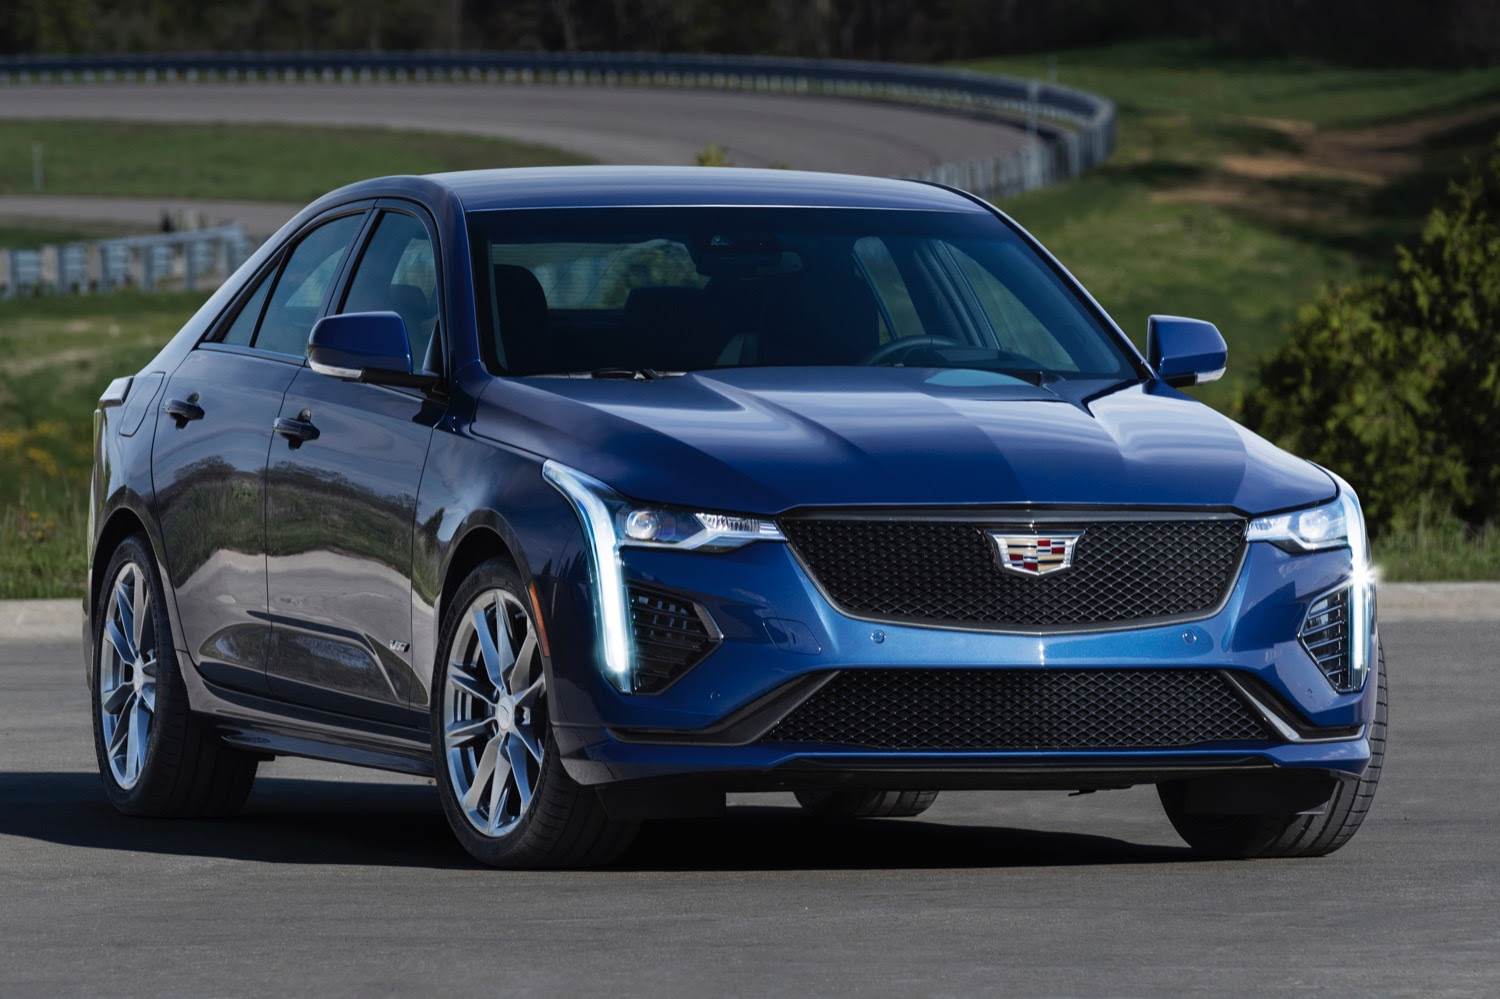 2020 Cadillac CT4-V Lands With A 320 HP 2.7L Turbo | GM ...